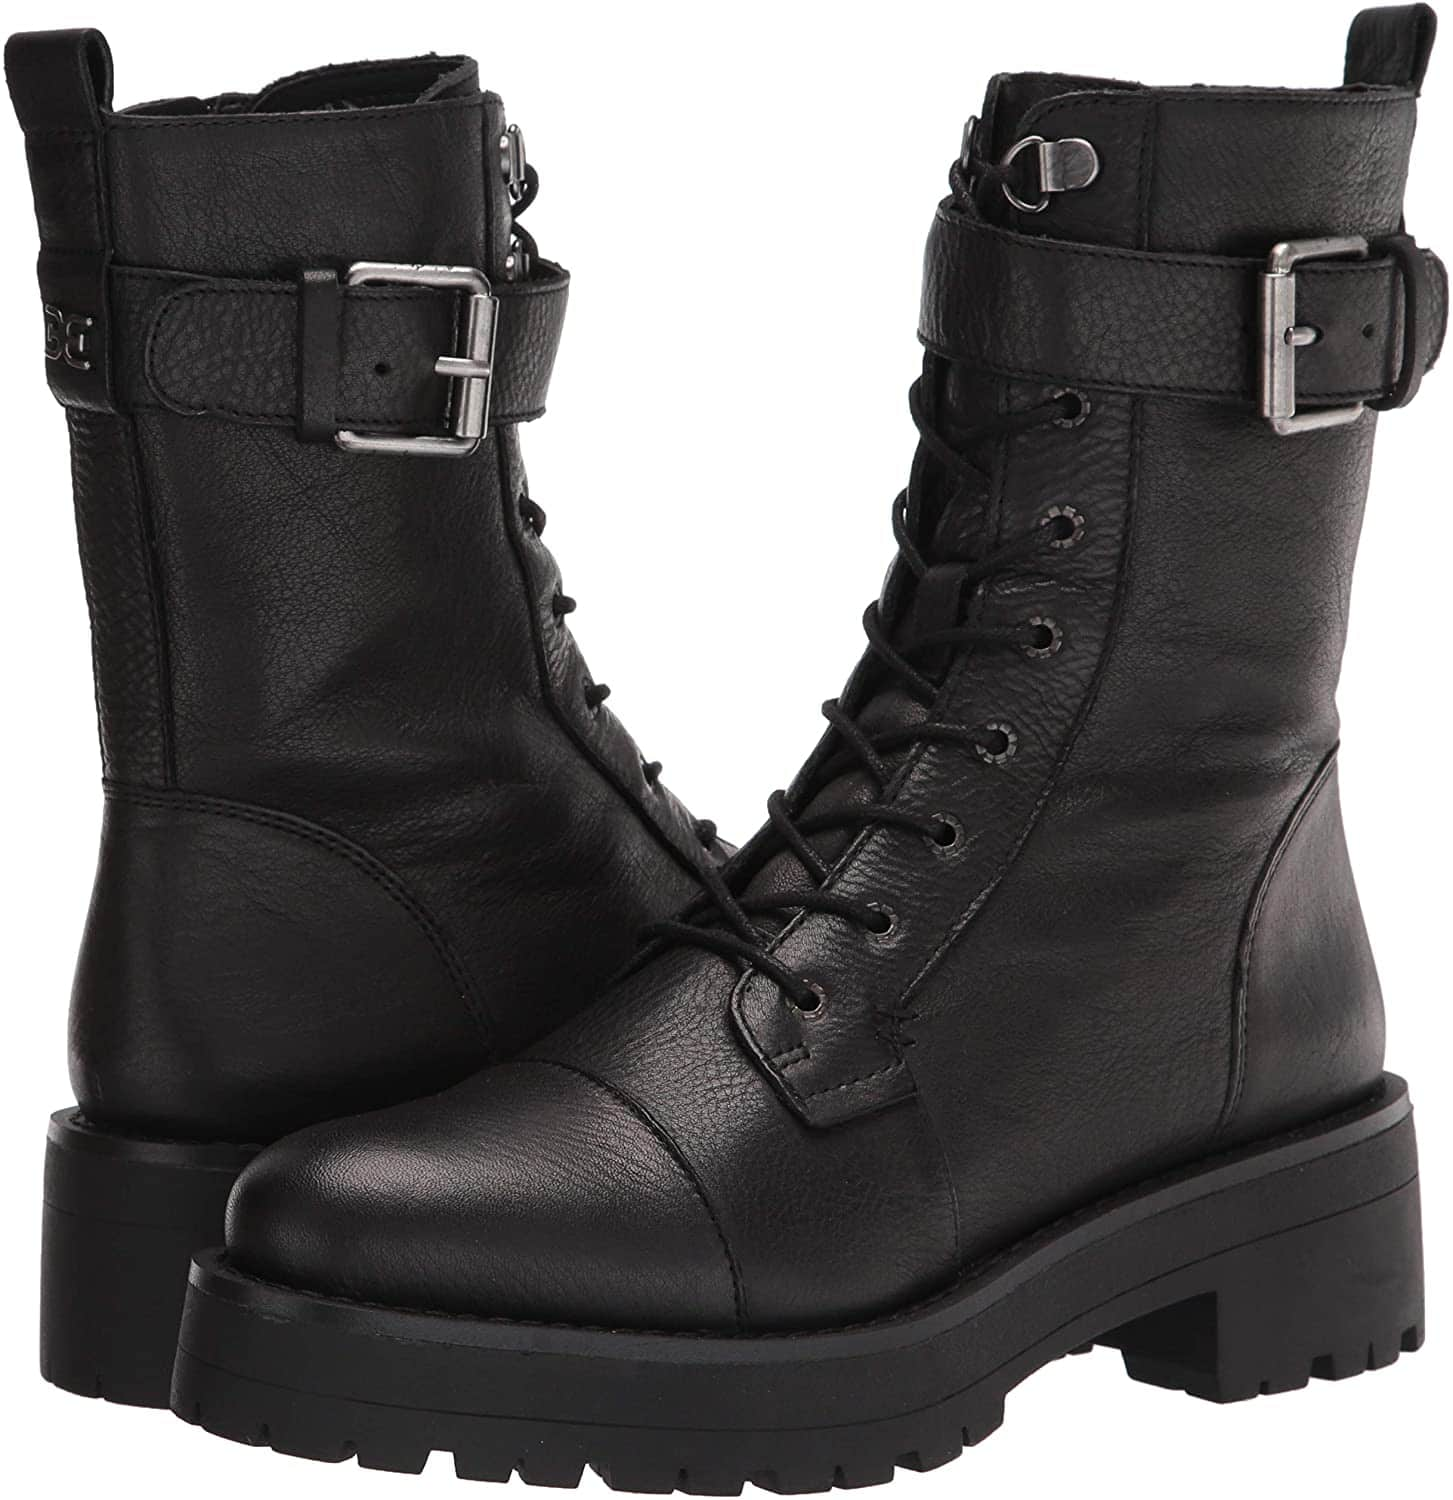 Add moto-edge to your look with the Sam Edelman Junip combat boots, featuring a buckled strap